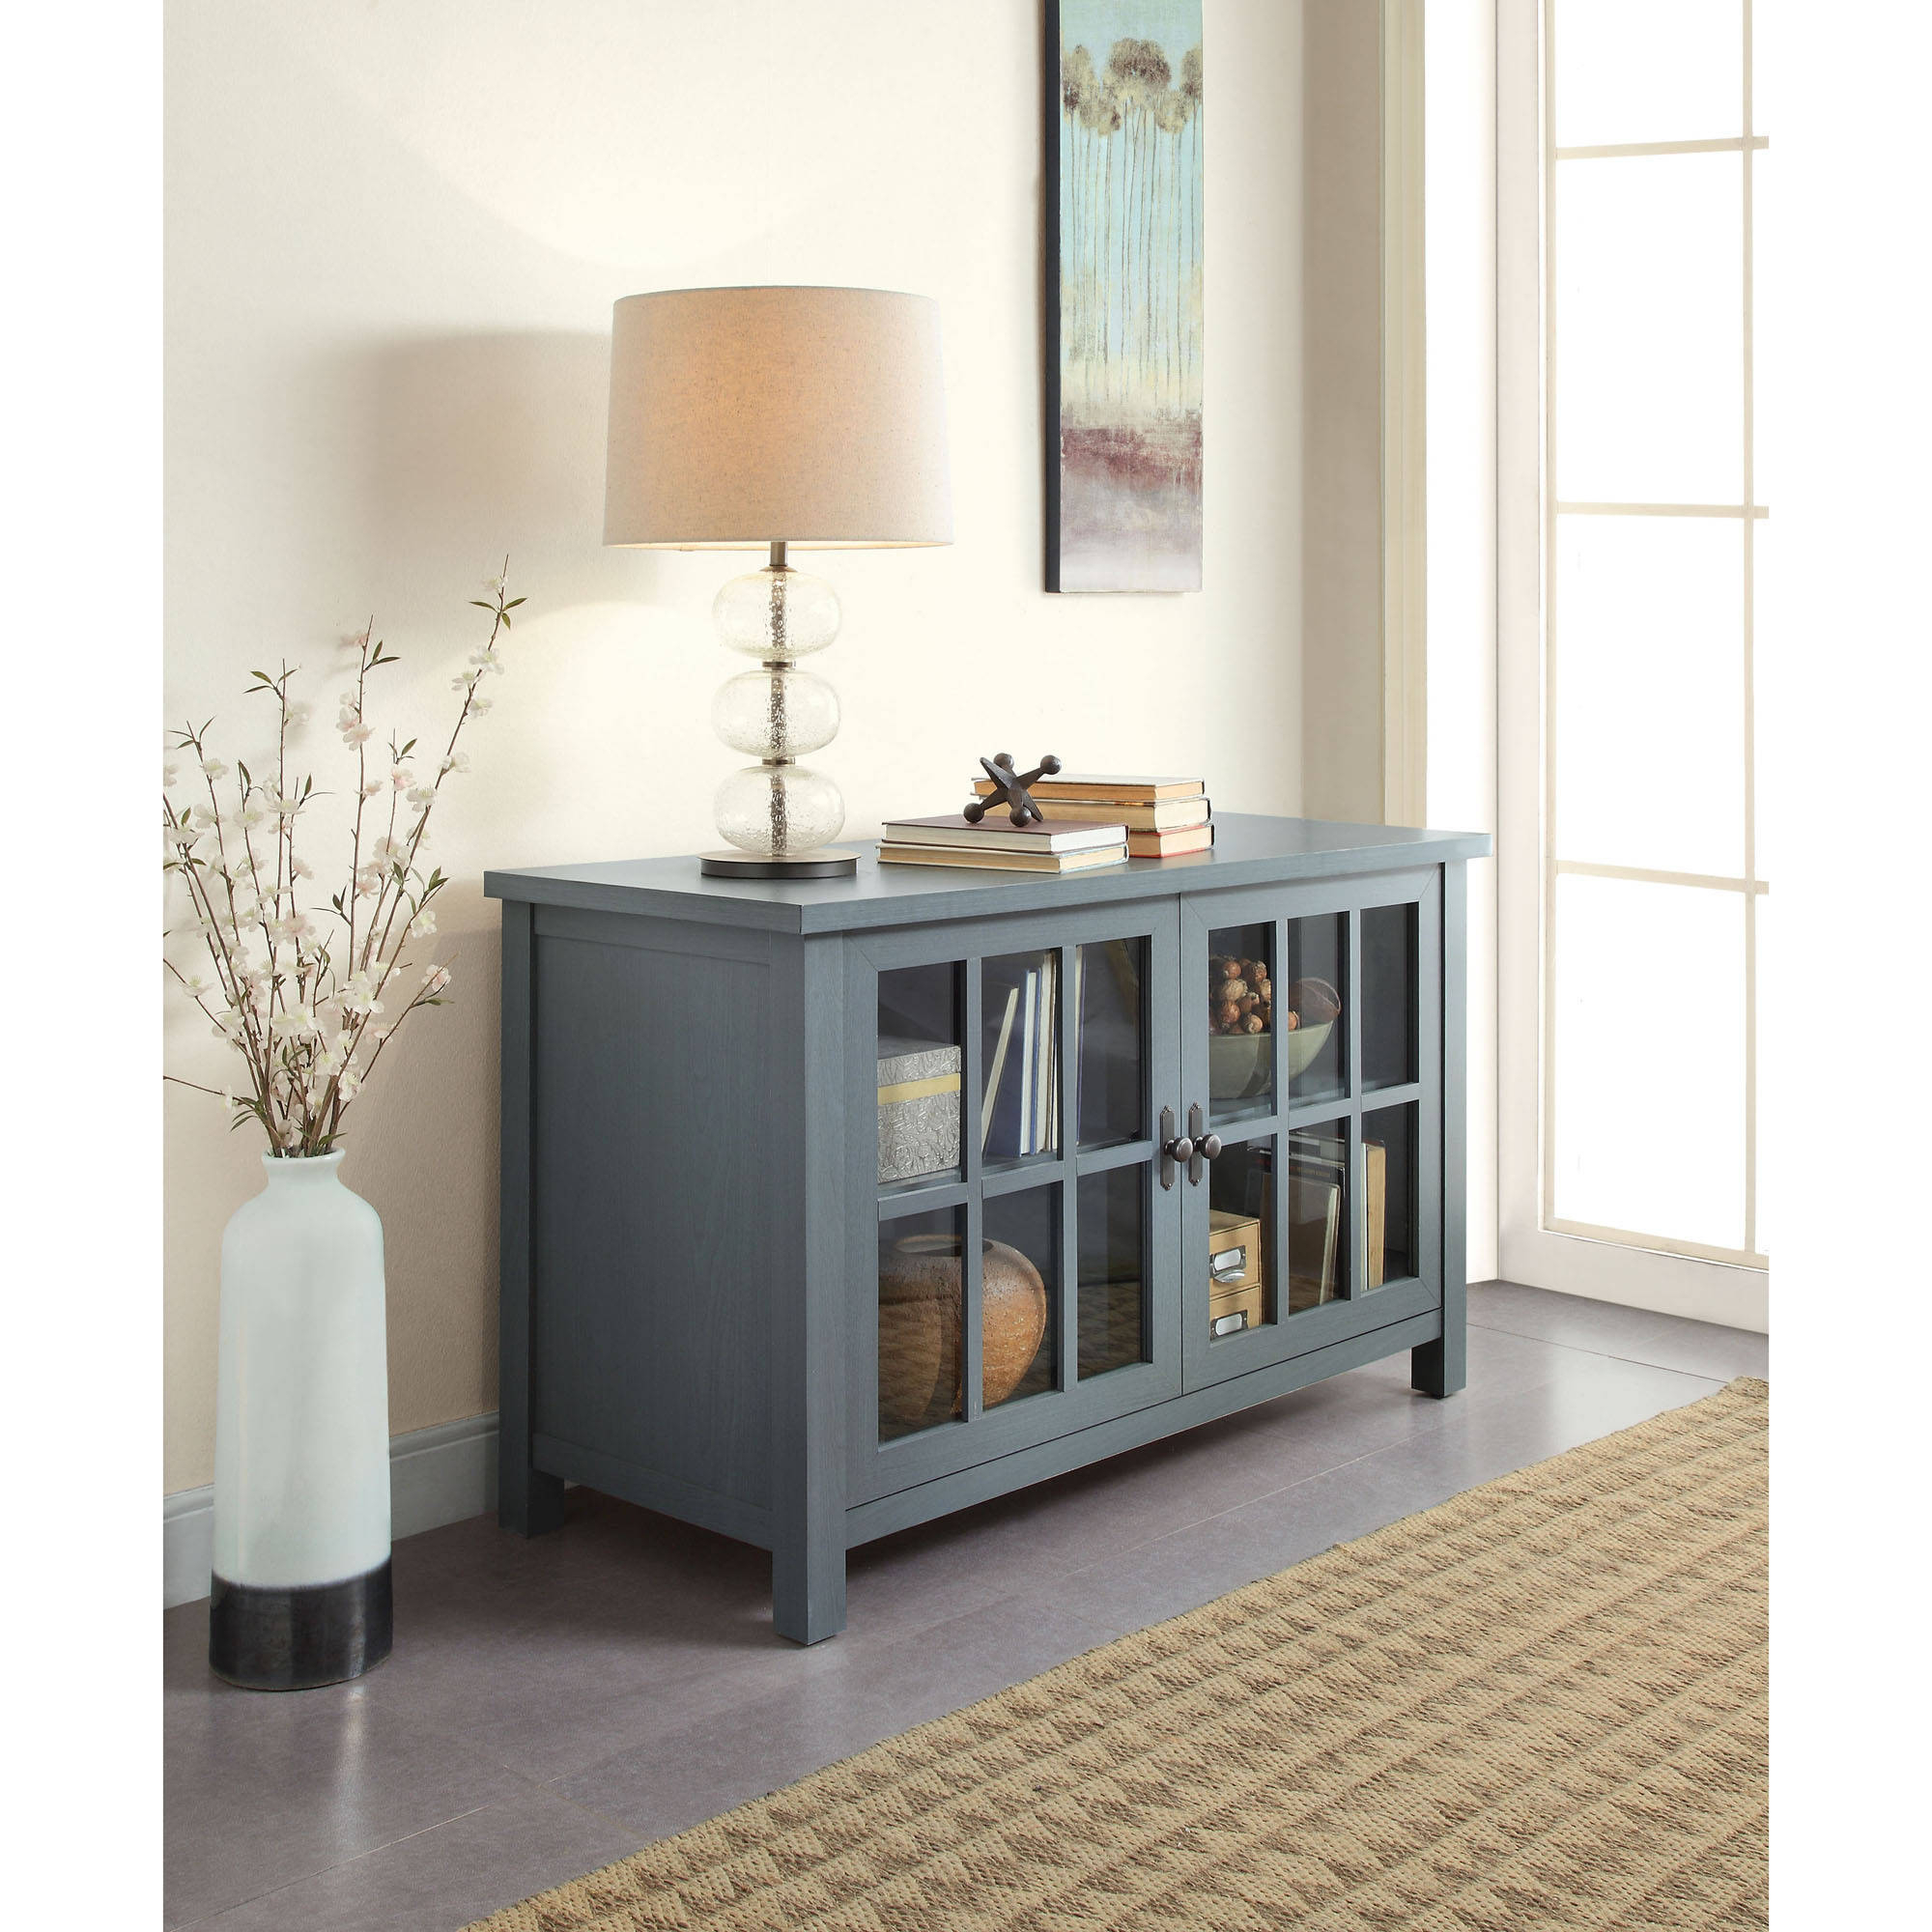 Blue Tv Stands With Well Known Teal Blue Tv Stand Better Homes And Gardens Oxford Square Console (View 6 of 20)